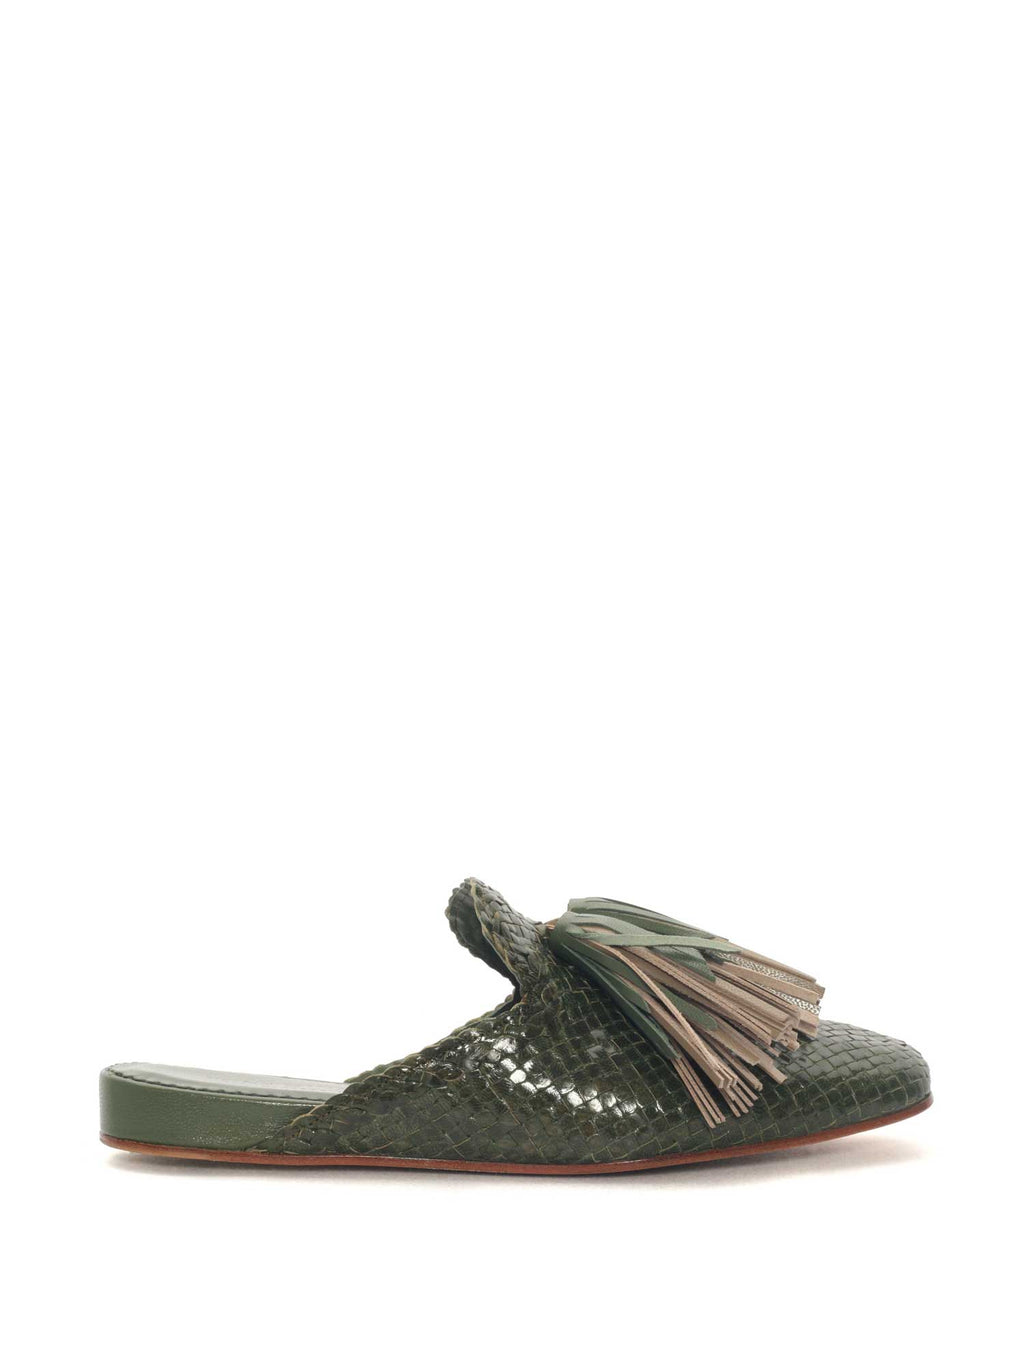 MOSS LEATHER MULE